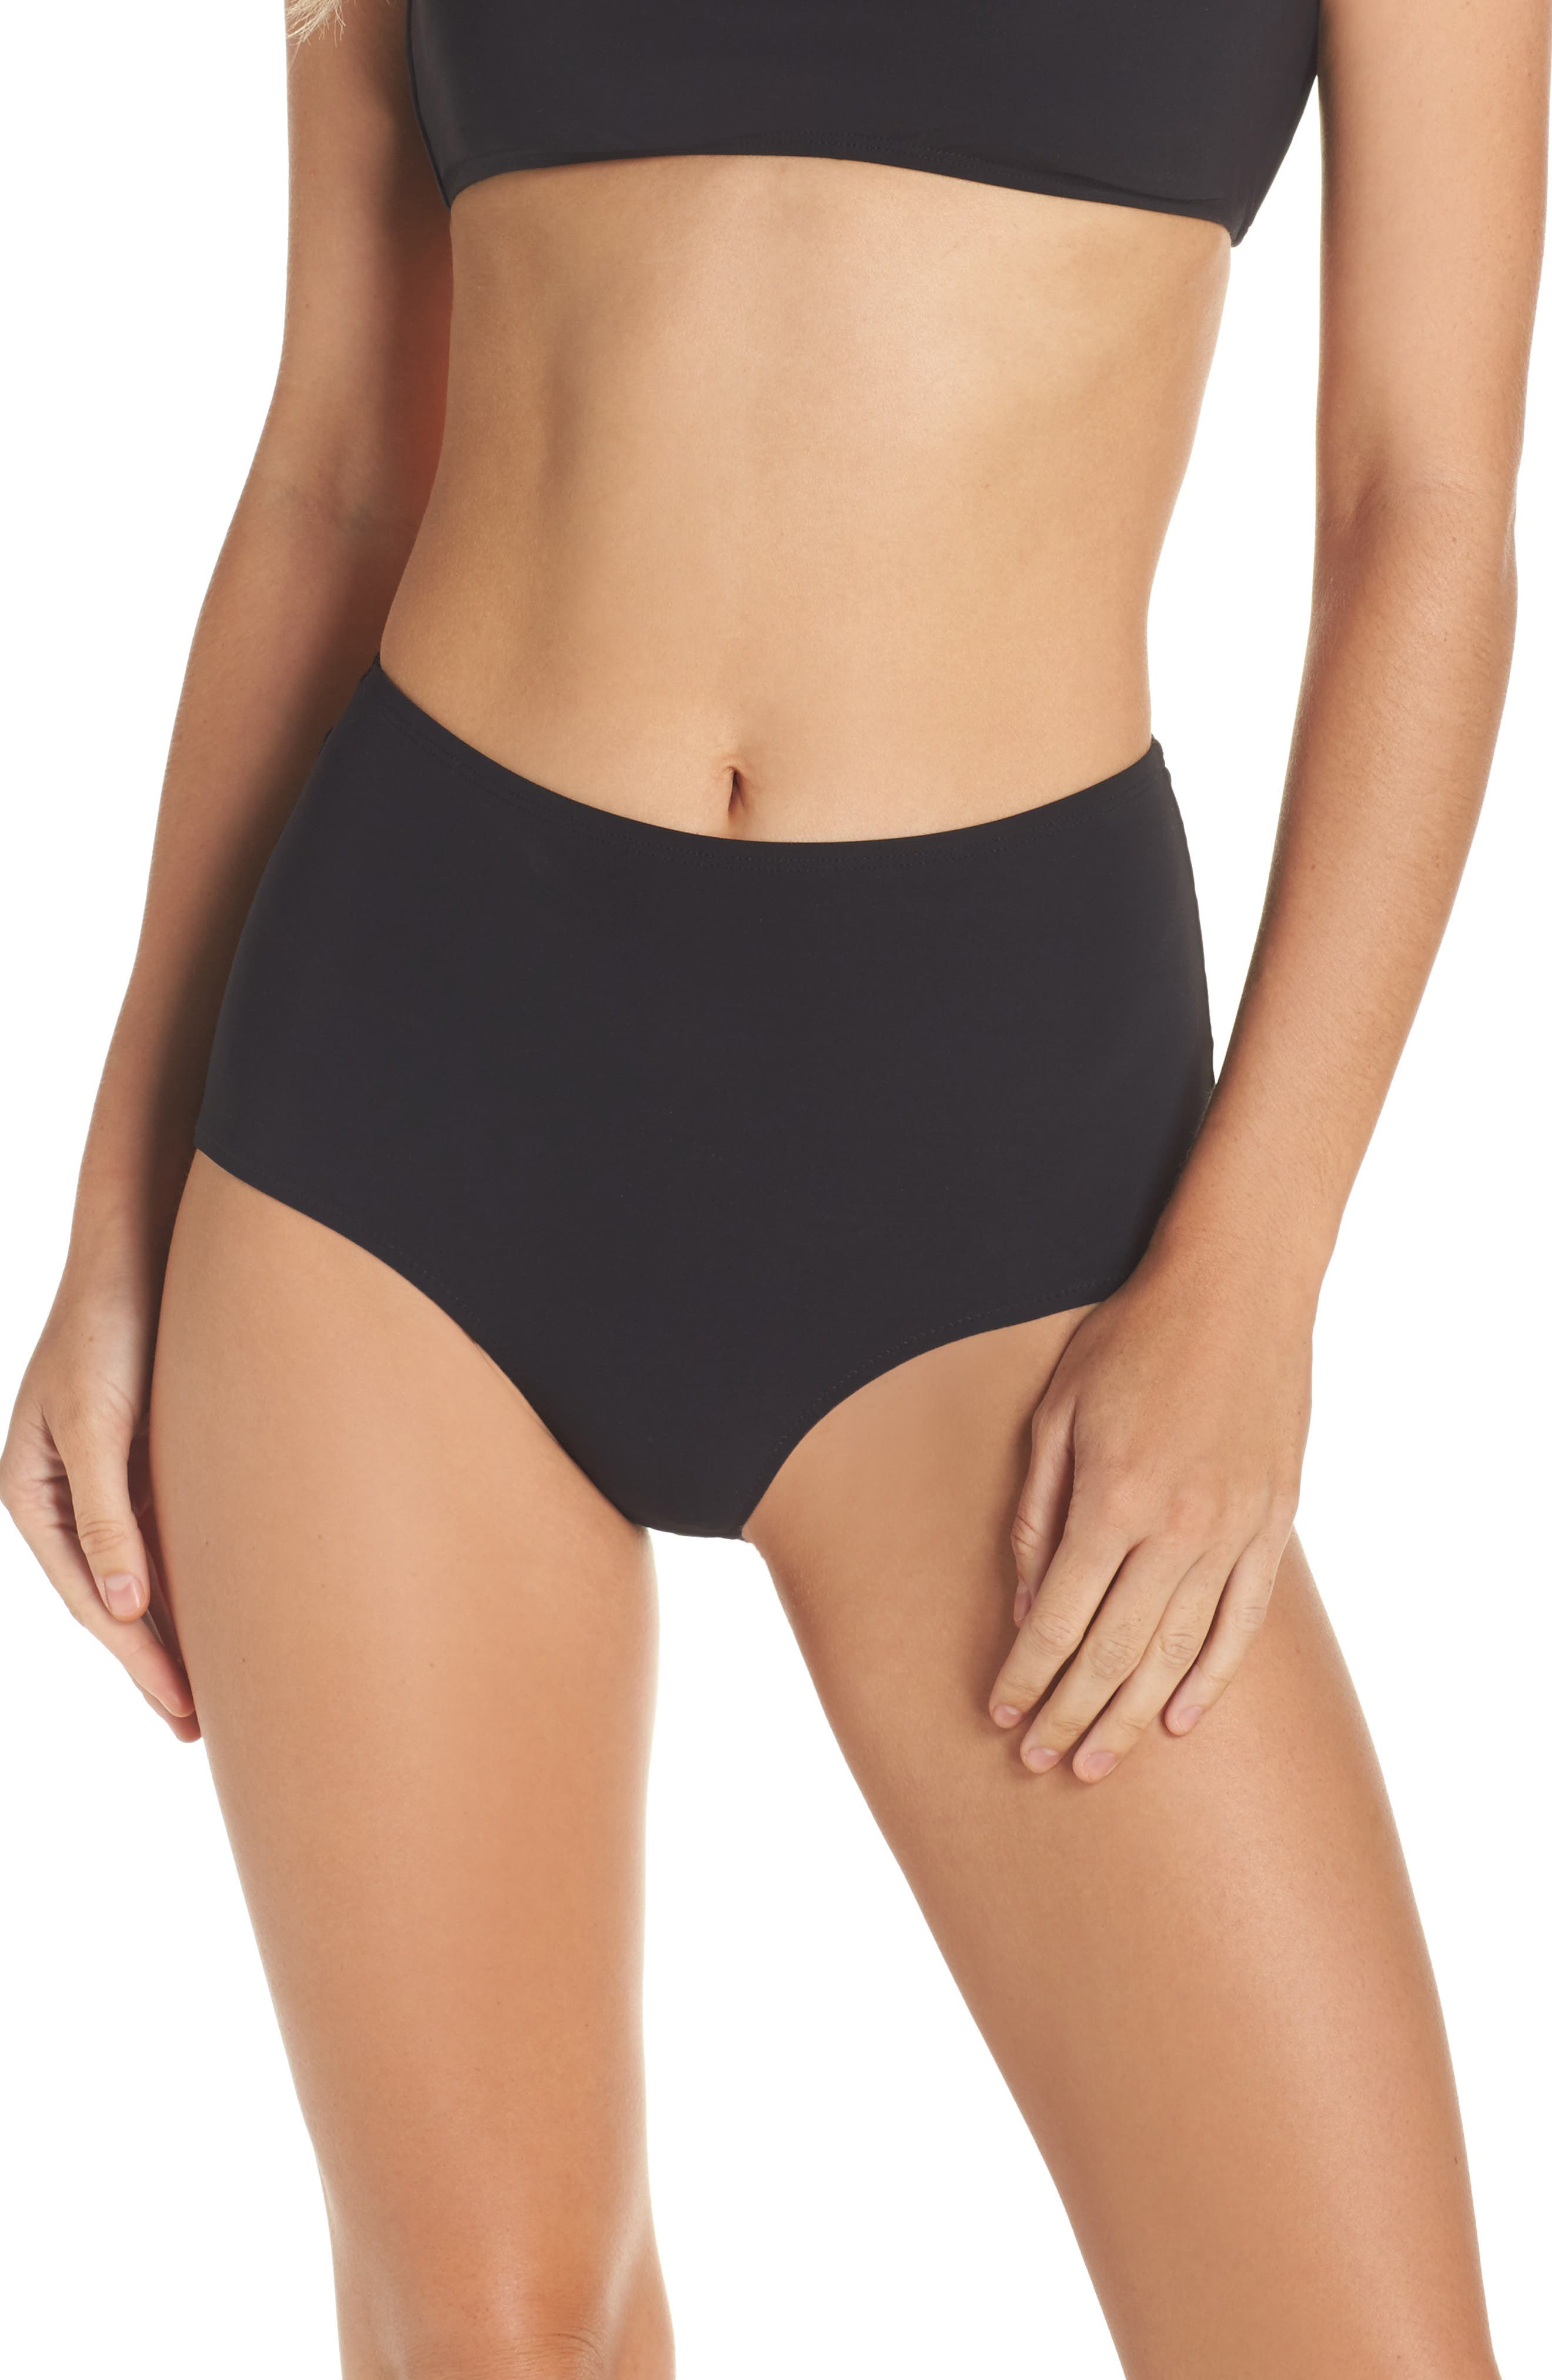 Tory Burch High Waist Bikini Bottoms